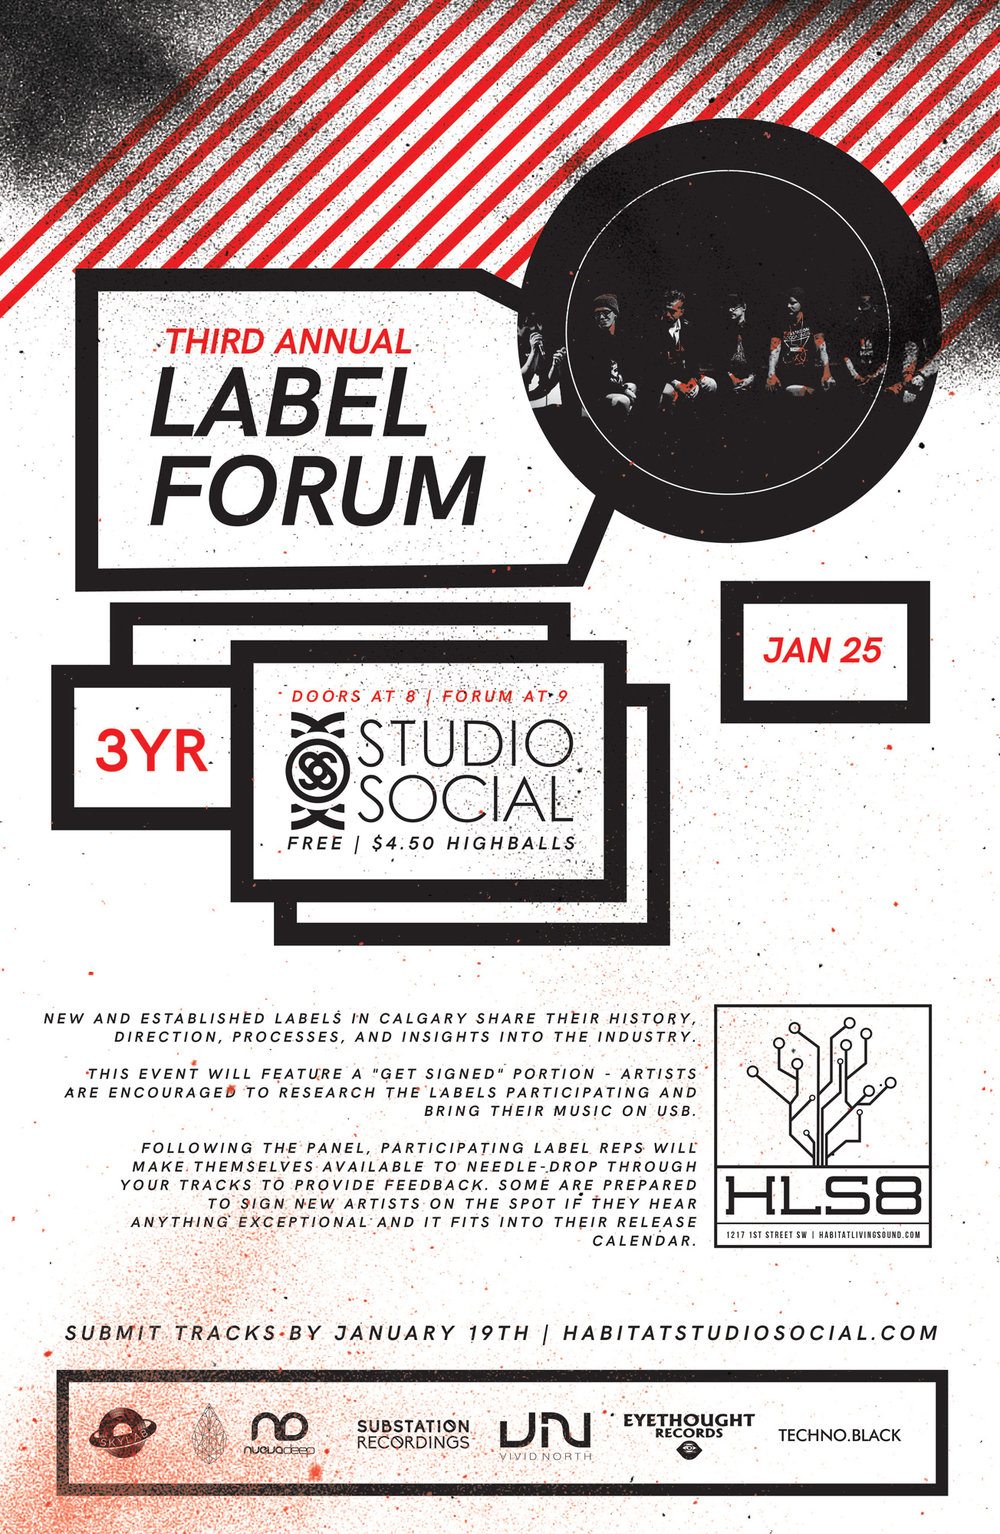 Studio-social-label-forum.jpeg